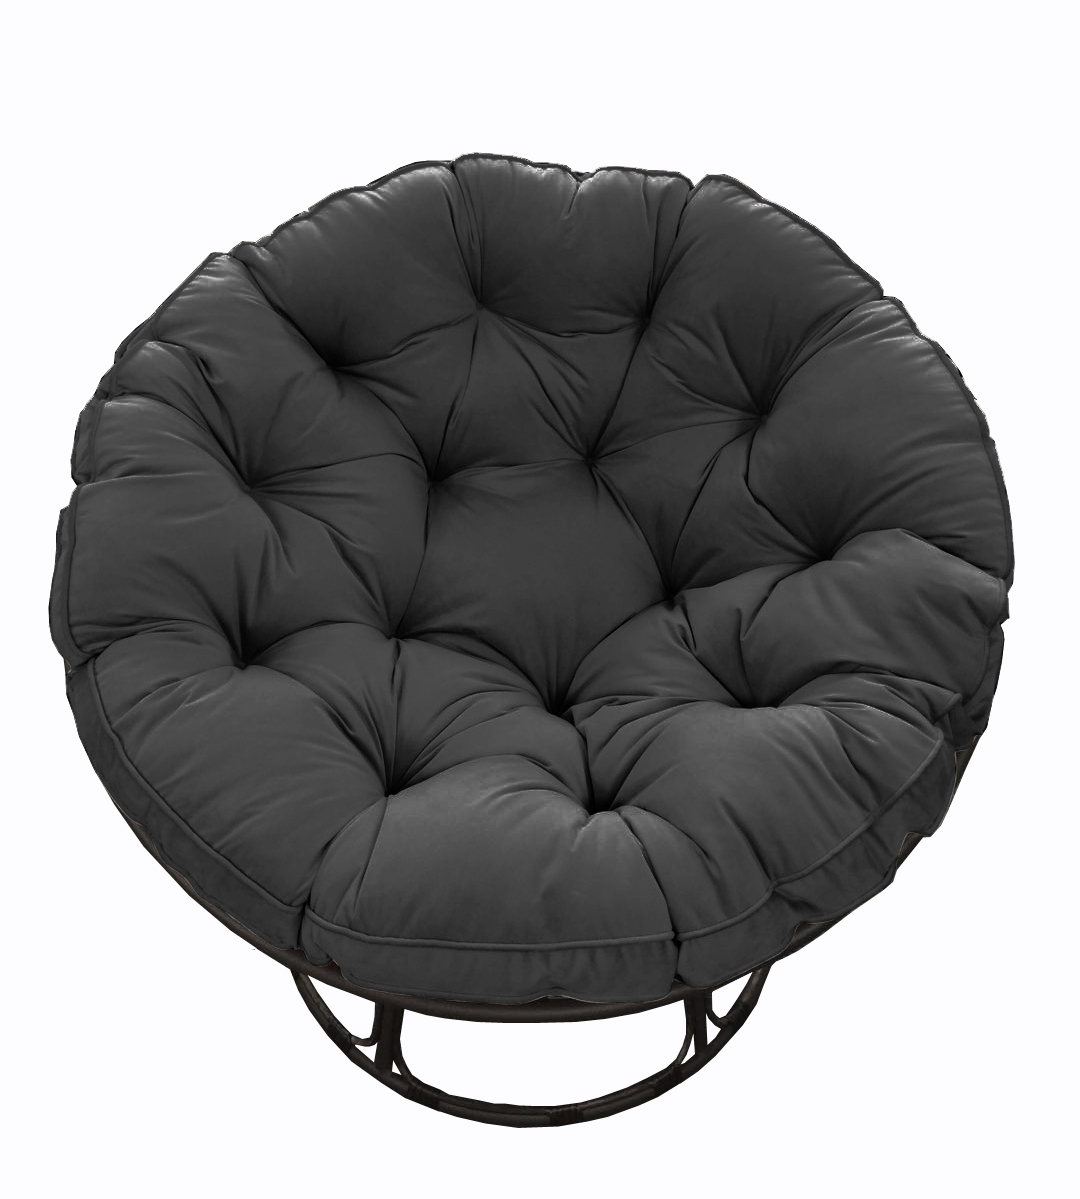 Better Homes & Gardens Papasan Chair with Fabric Cushion, Charcoal Gray